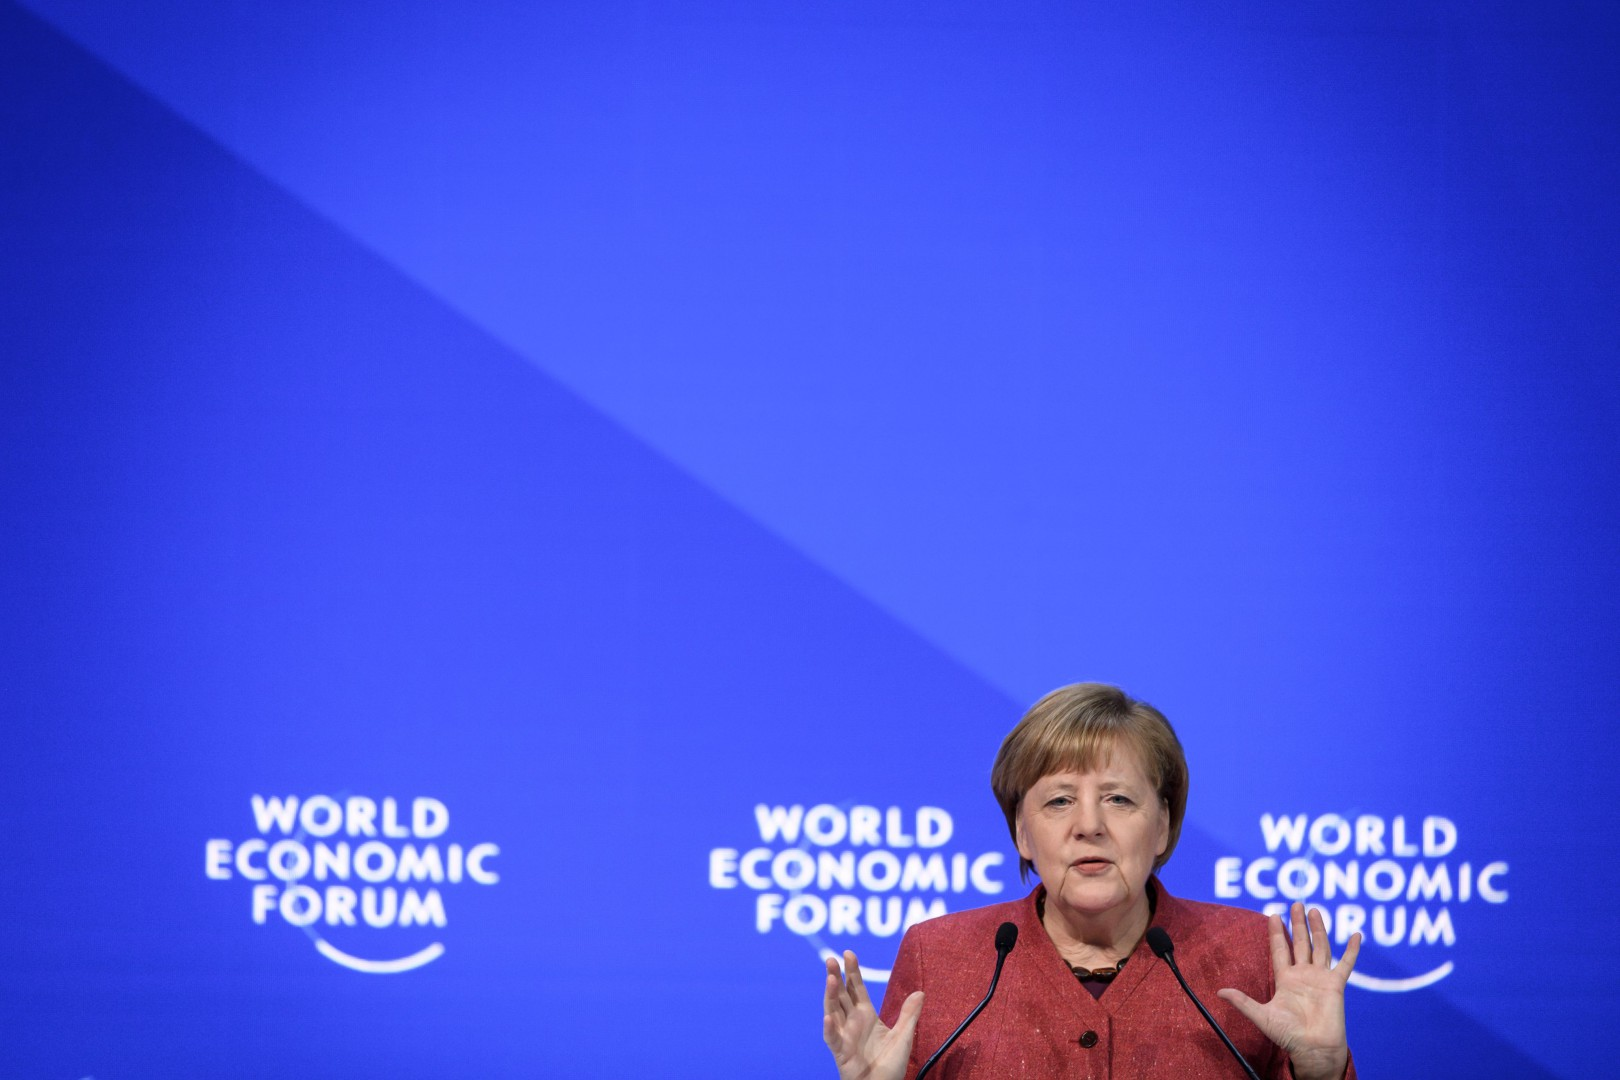 German chancellor Angela Merkel delivers a speech during the World Economic Forum (WEF) annual meeting, on January 23, 2019 in Davos, eastern Switzerland. (Photo by Fabrice COFFRINI / AFP)